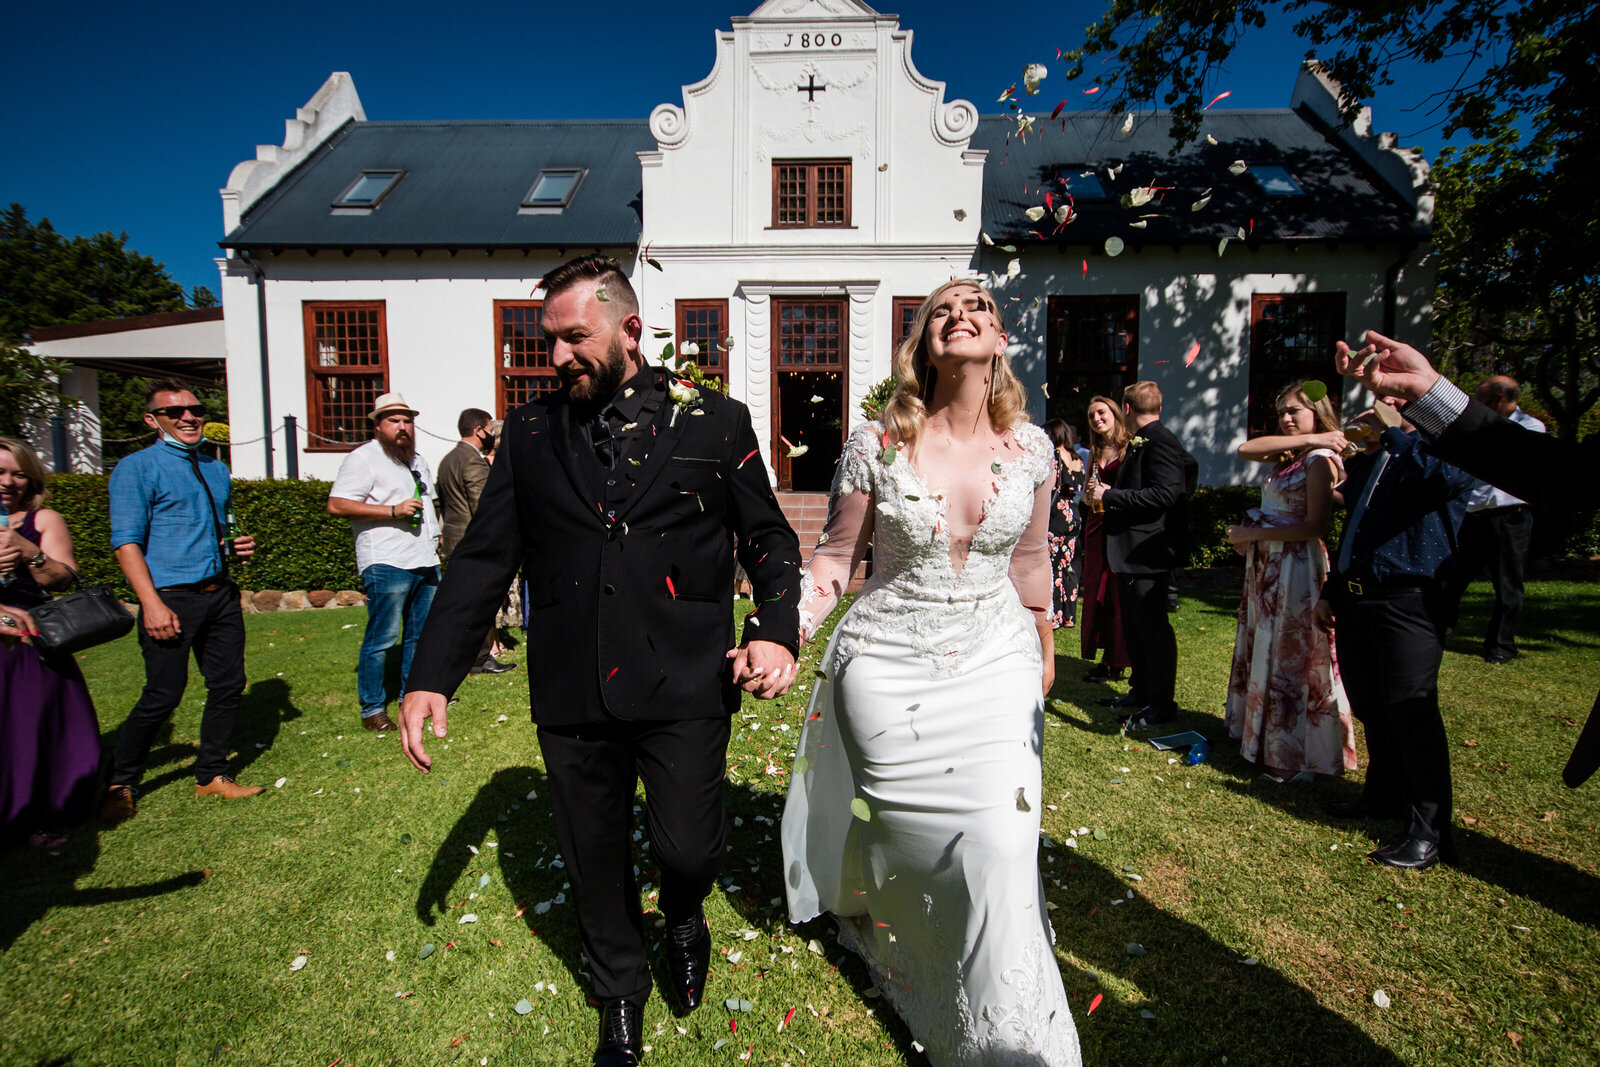 Wedding Photographer + Cape Town venue +Elri Photography+ Weddingdress (37)